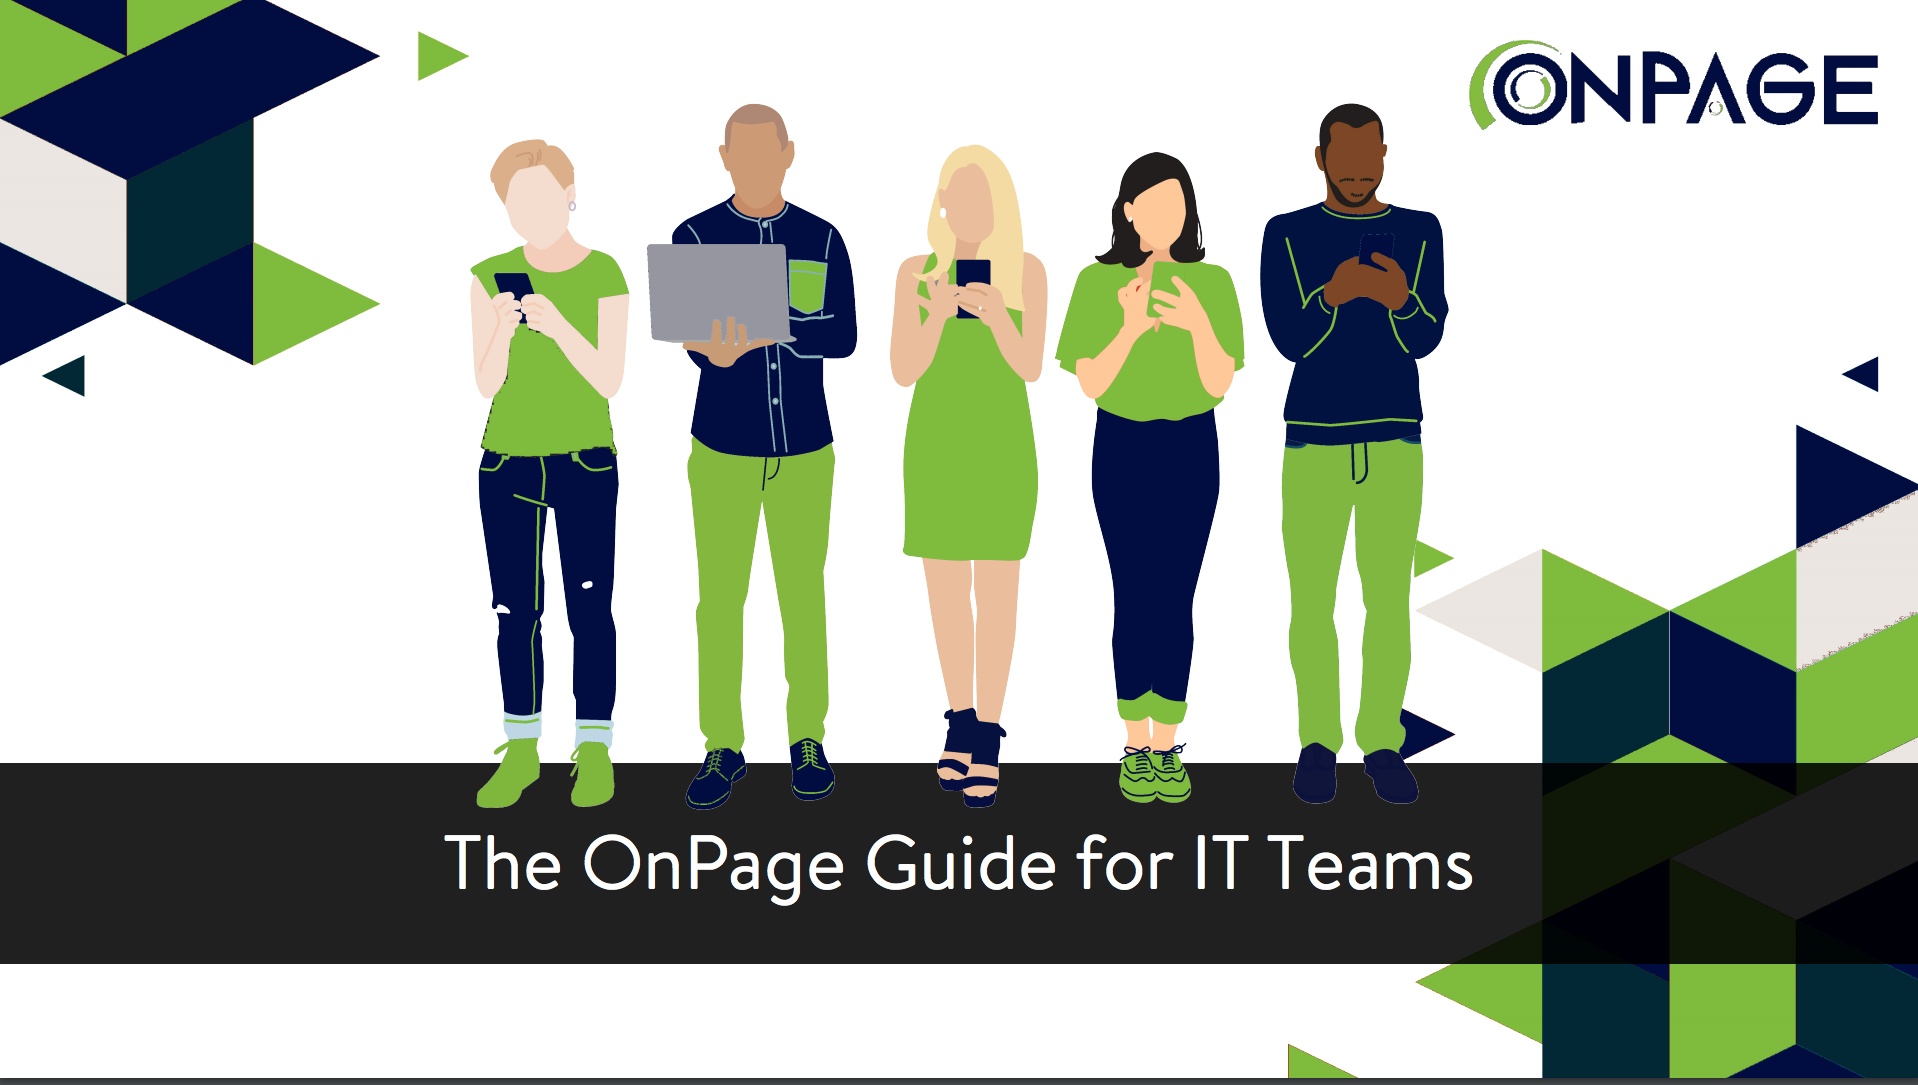 The OnPage Guide for IT Teams